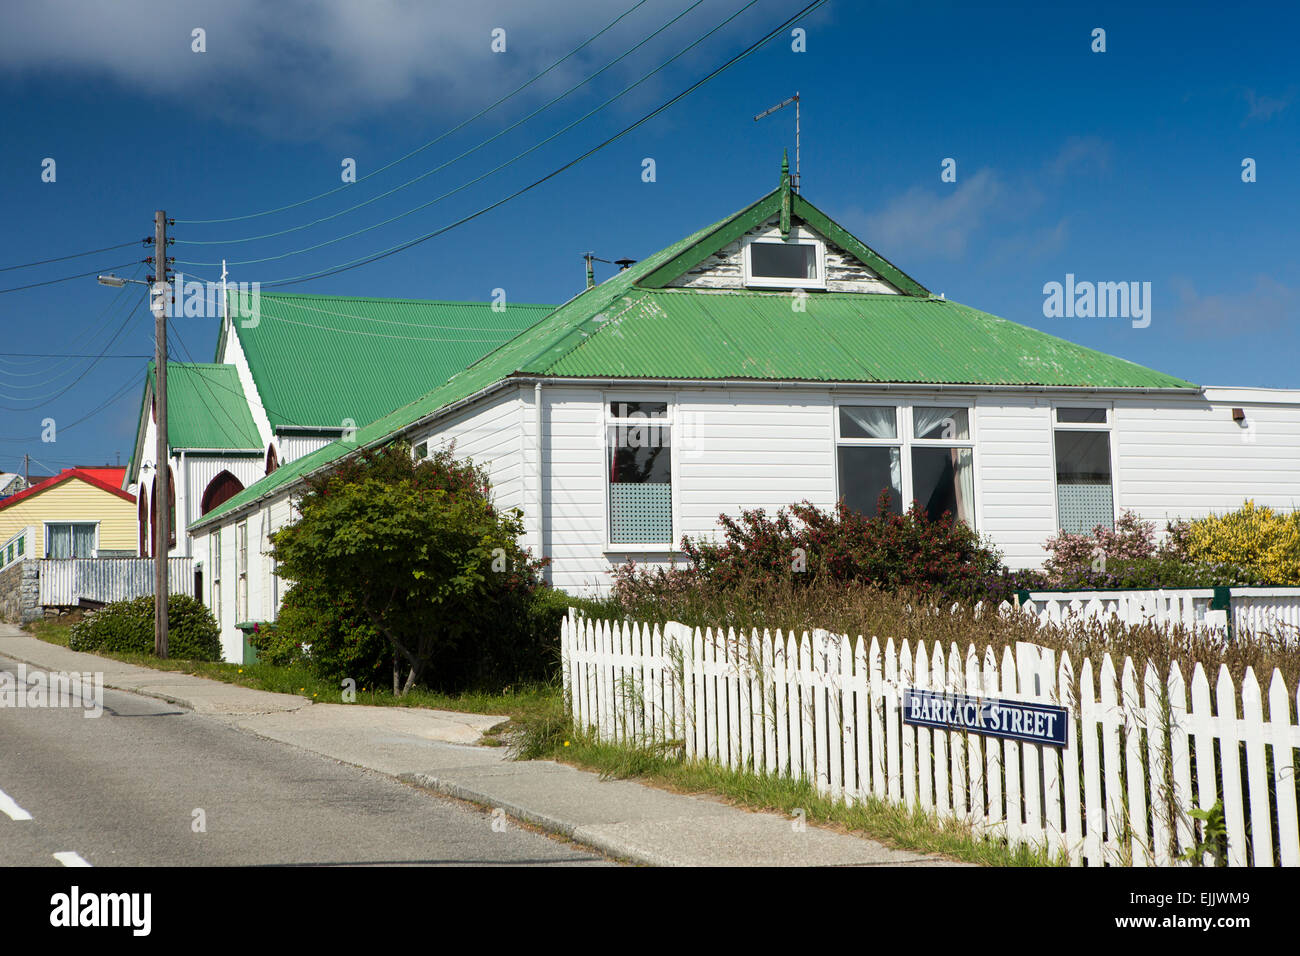 Falklands, Port Stanley, Barrack Street, green roofed house and nonconformist church - Stock Image